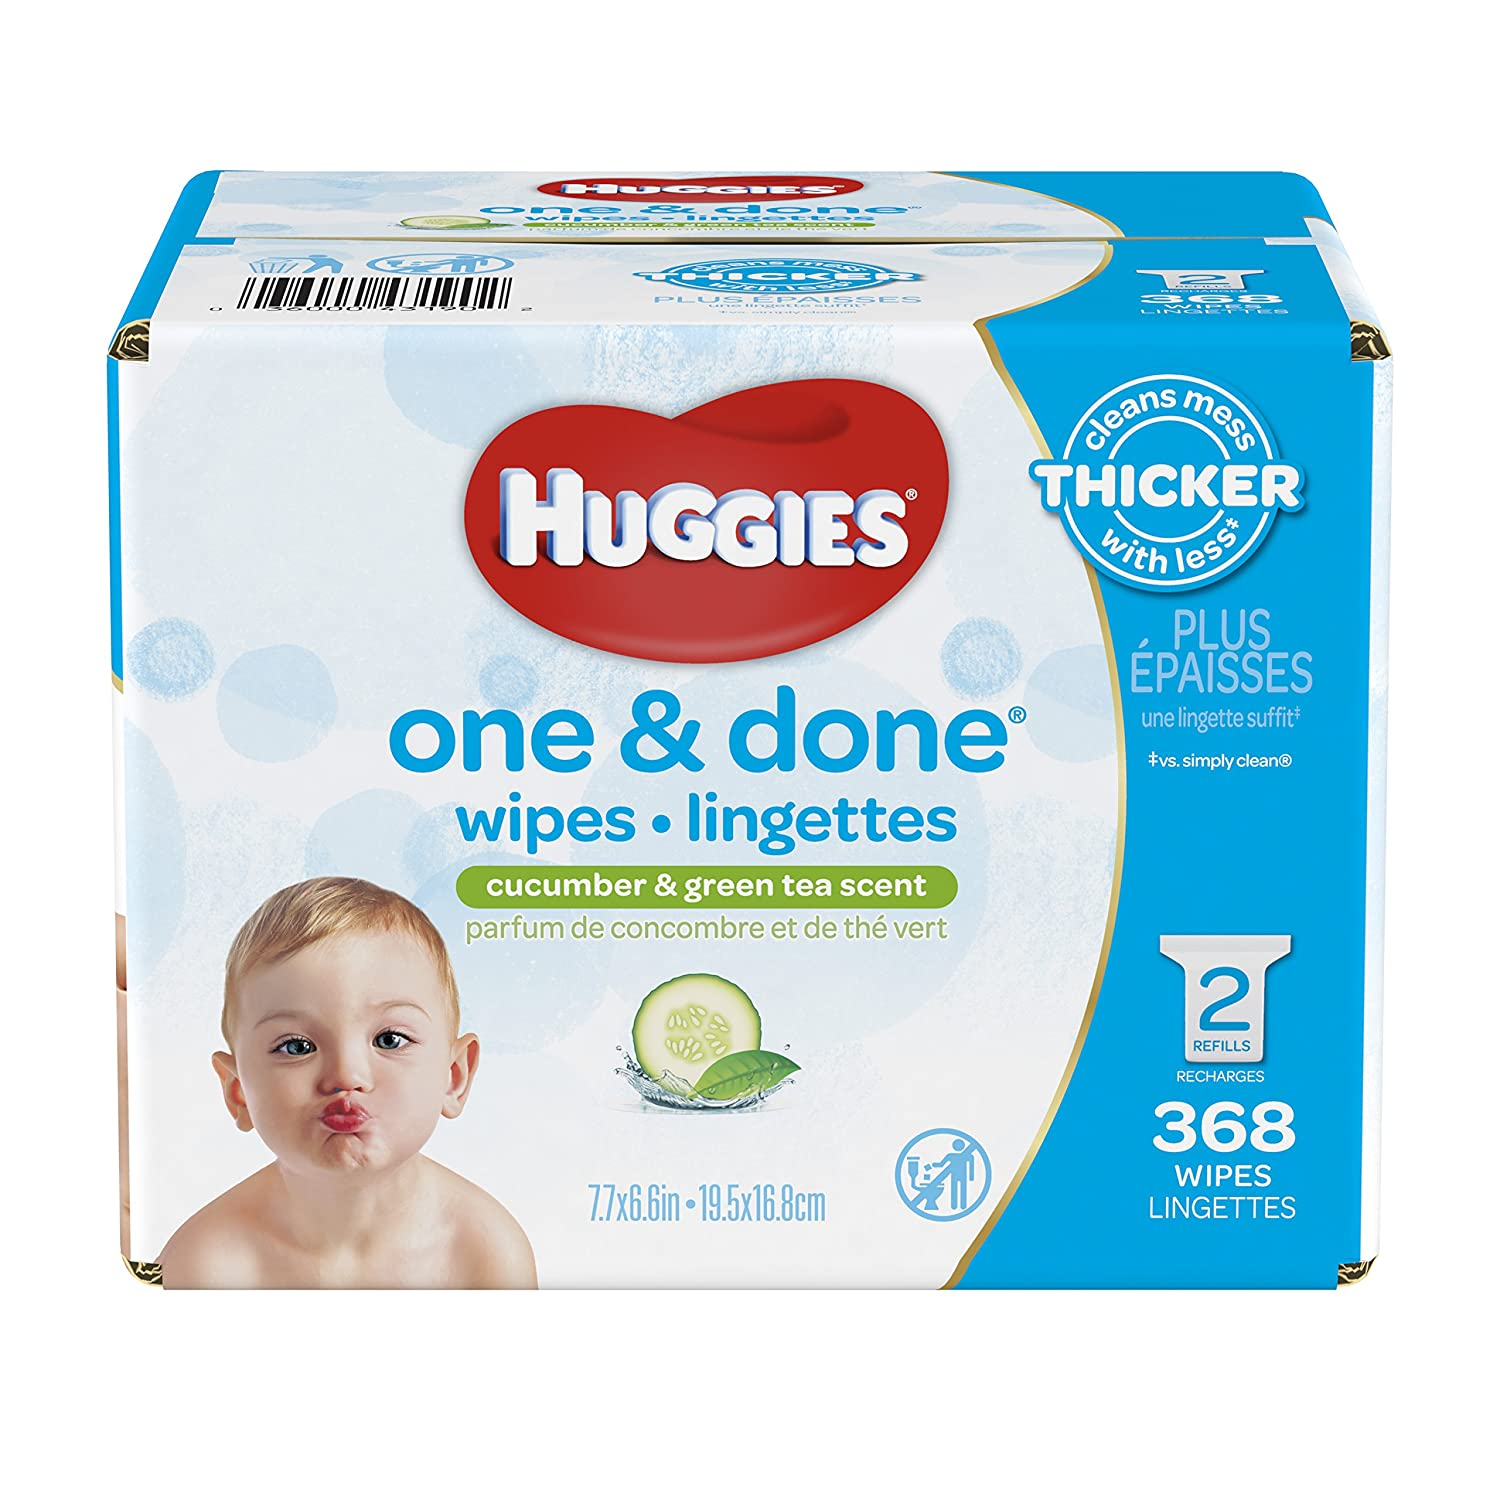 HUGGIES ONE & DONE Cucumber and Green Tea Scented Baby Wipes, Hypoallergenic (6X Soft Packs, 336 Count) 10036000431961